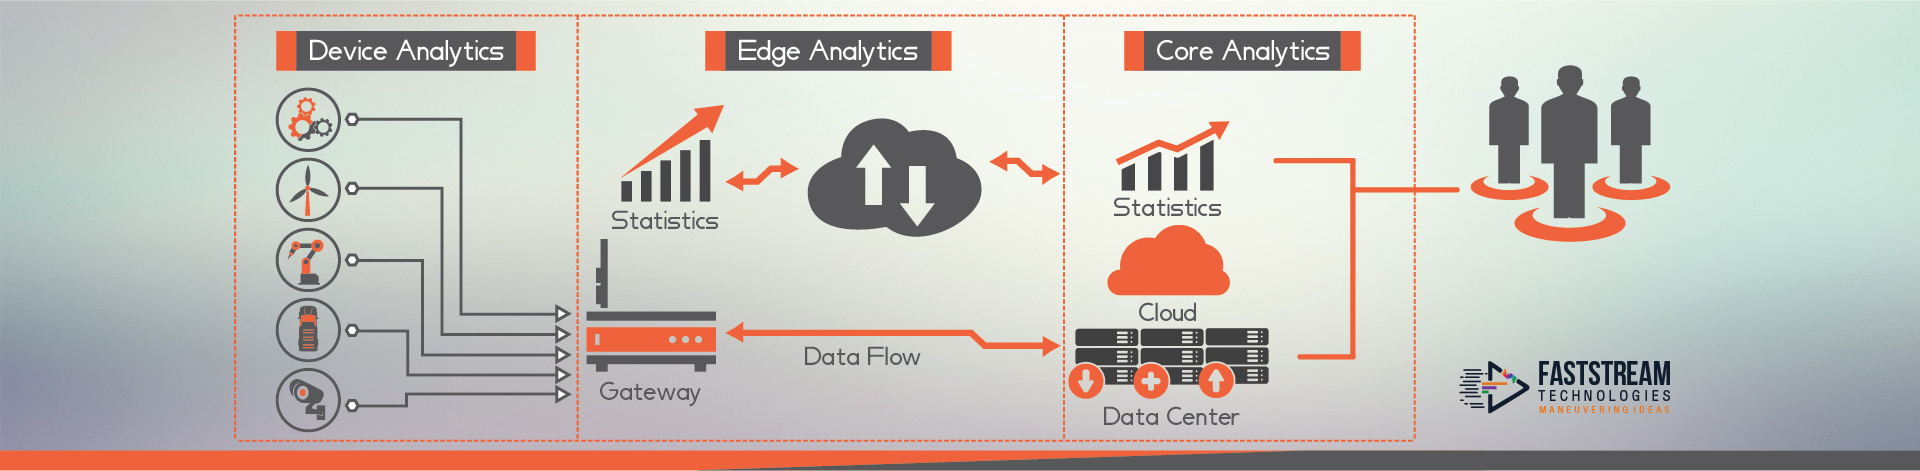 Network Edge boosting ladder to the IIoT World